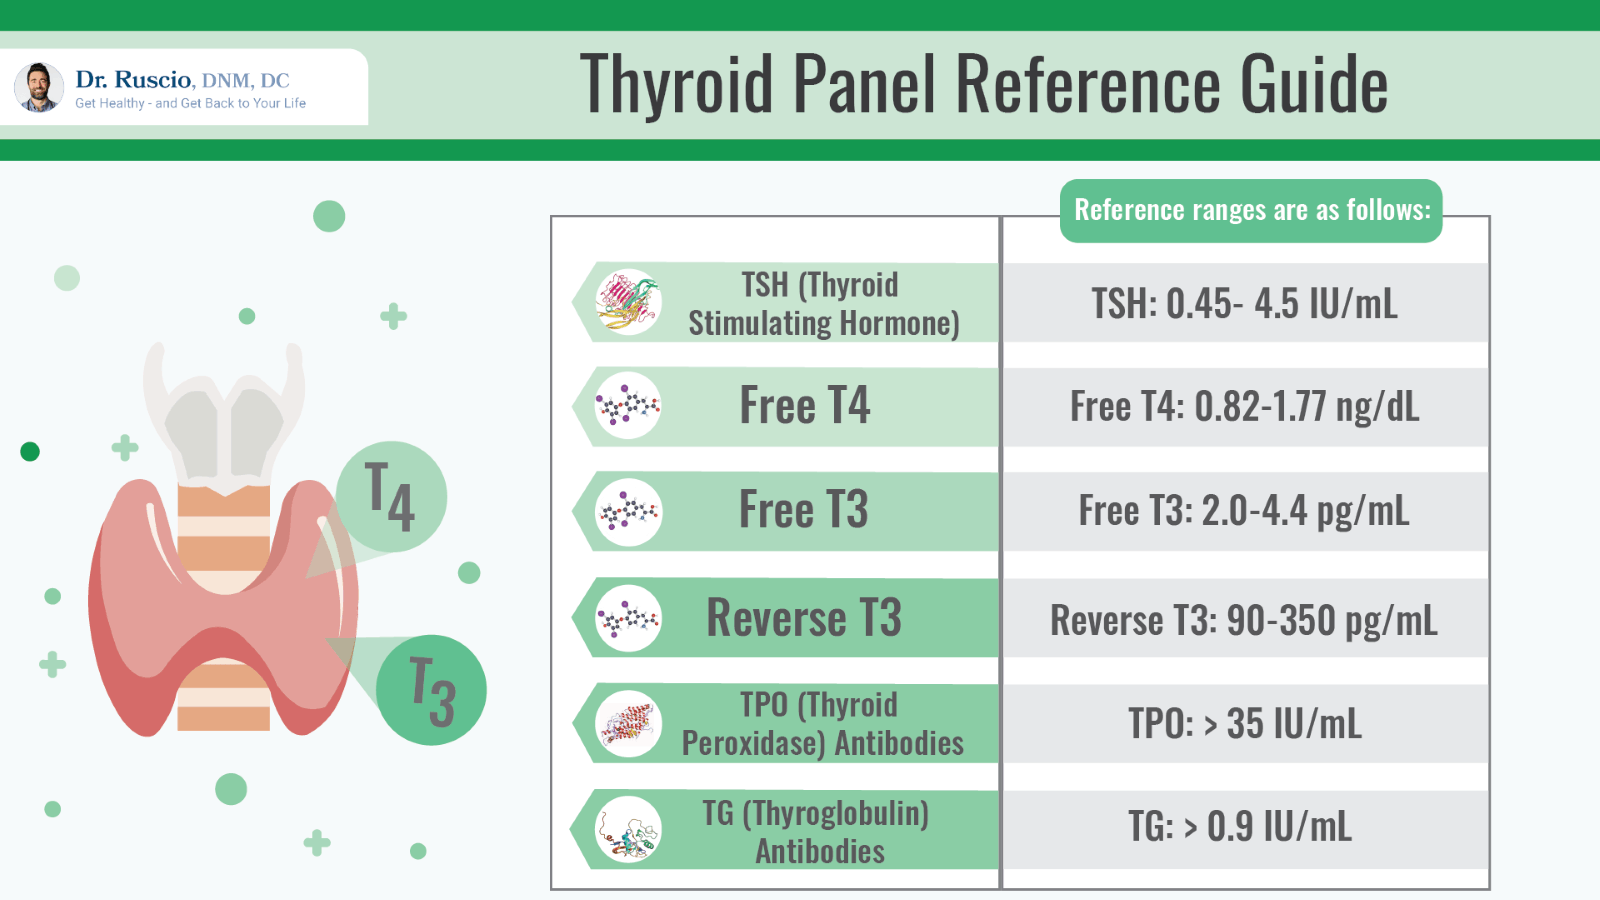 optimal thyroid levels: Thyroid panel reference guide chart by Dr. Ruscio